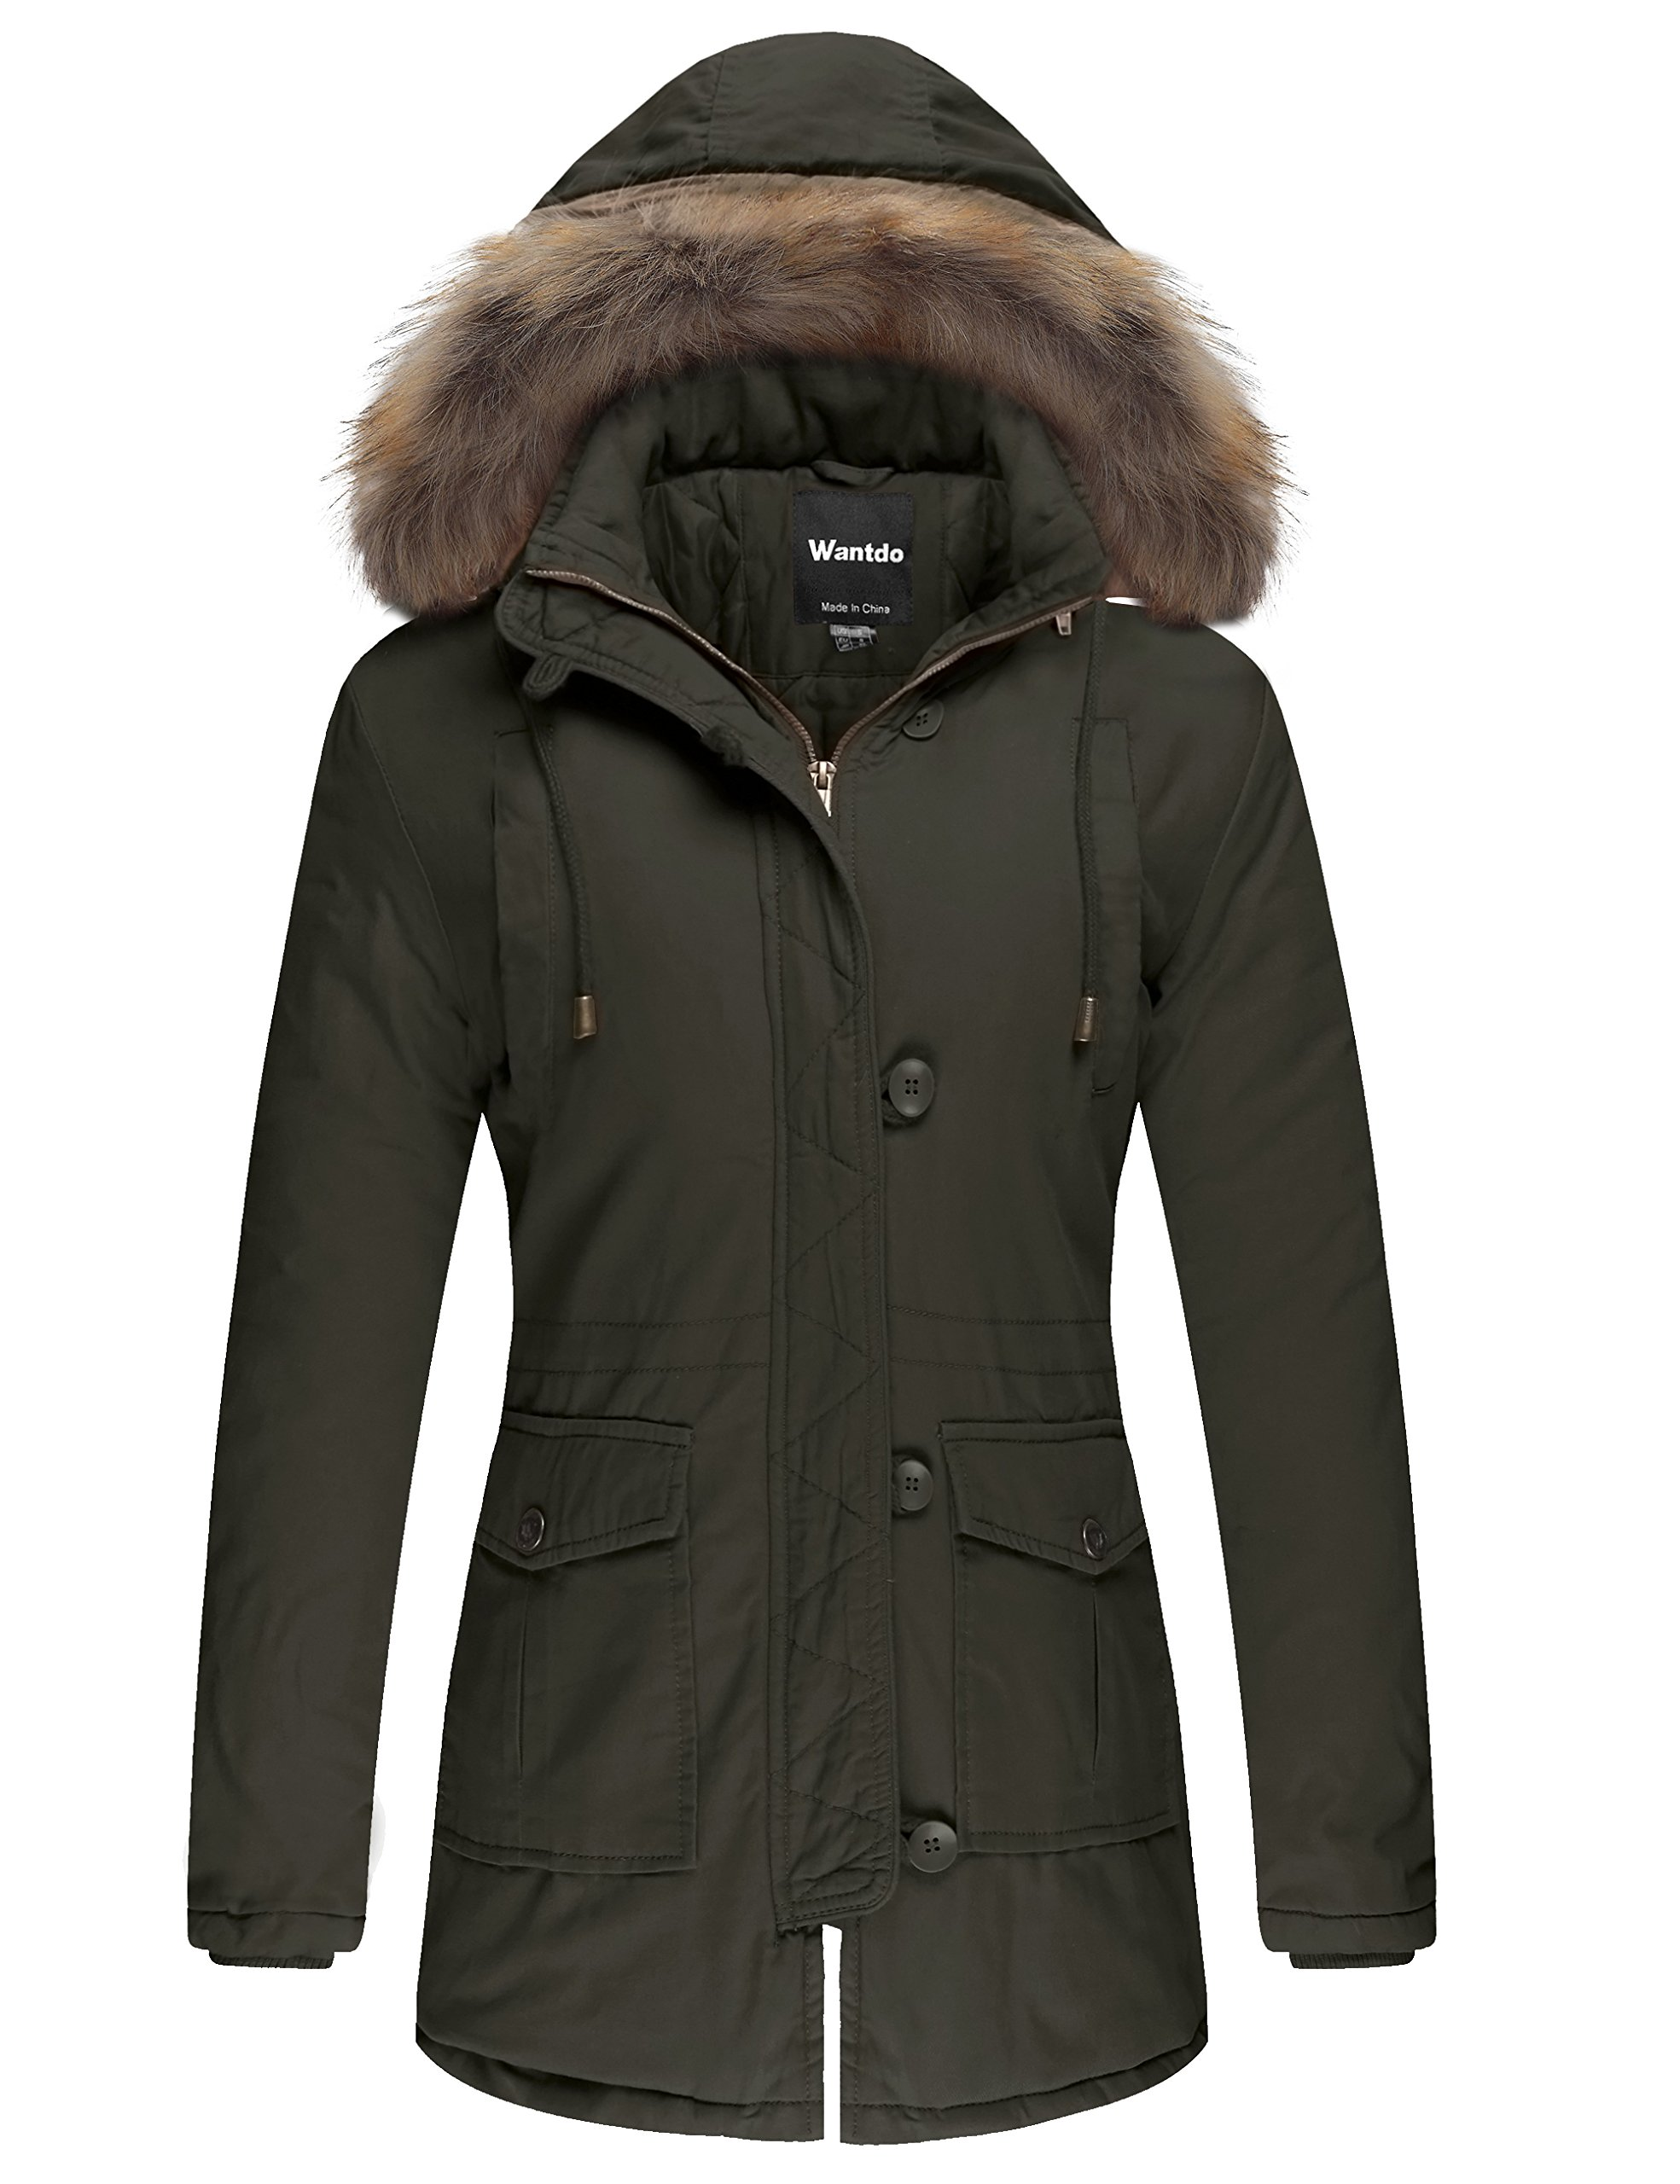 Wantdo Women's Cotton Padded Parka Coat with Removable Fur Hood (Army Green, US L)